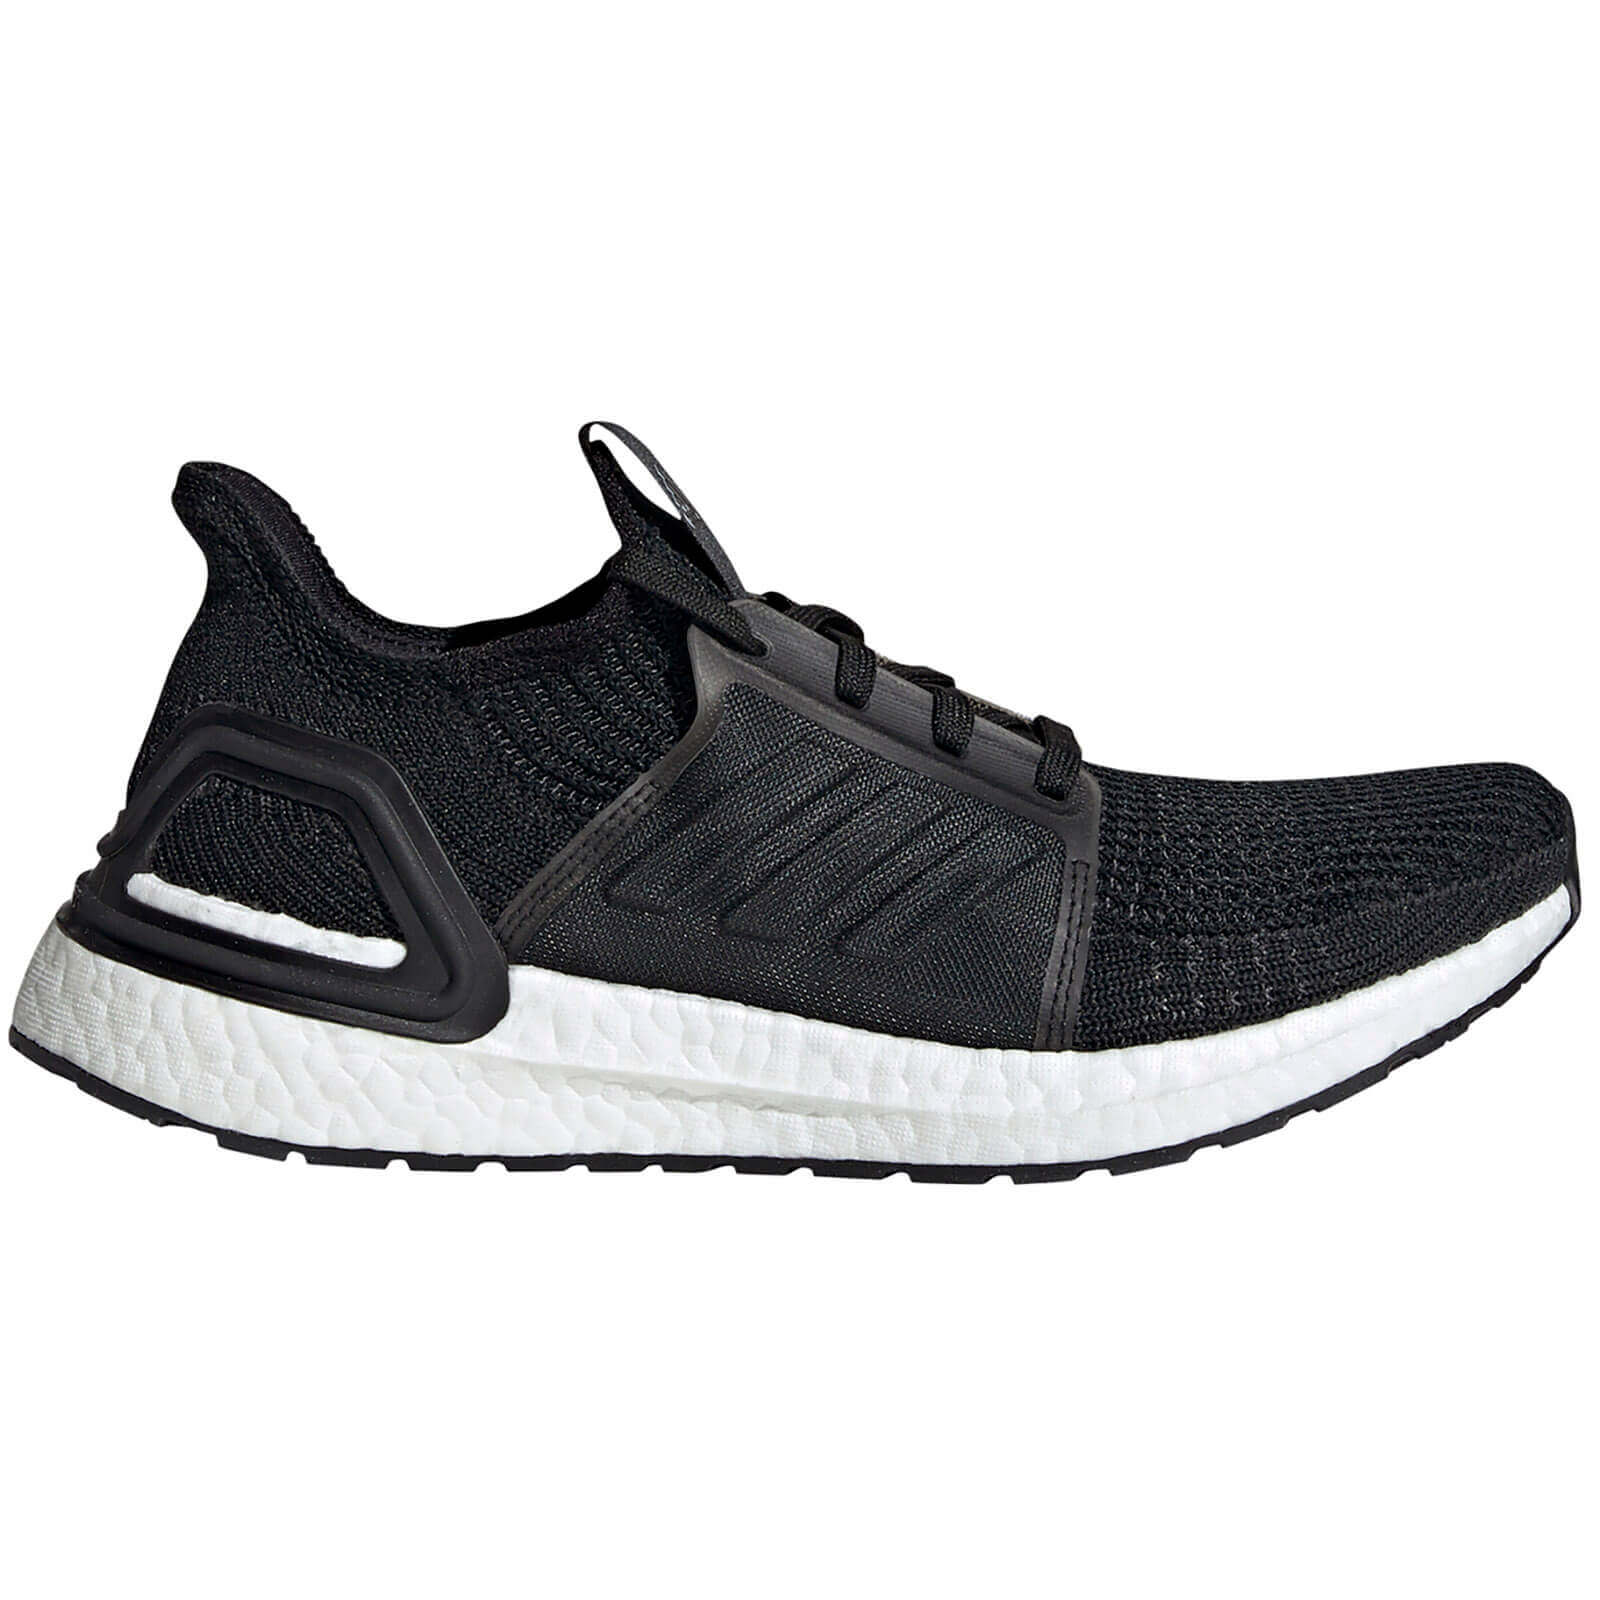 Running Shoes Women's Shoes Adidas Performance Ultra